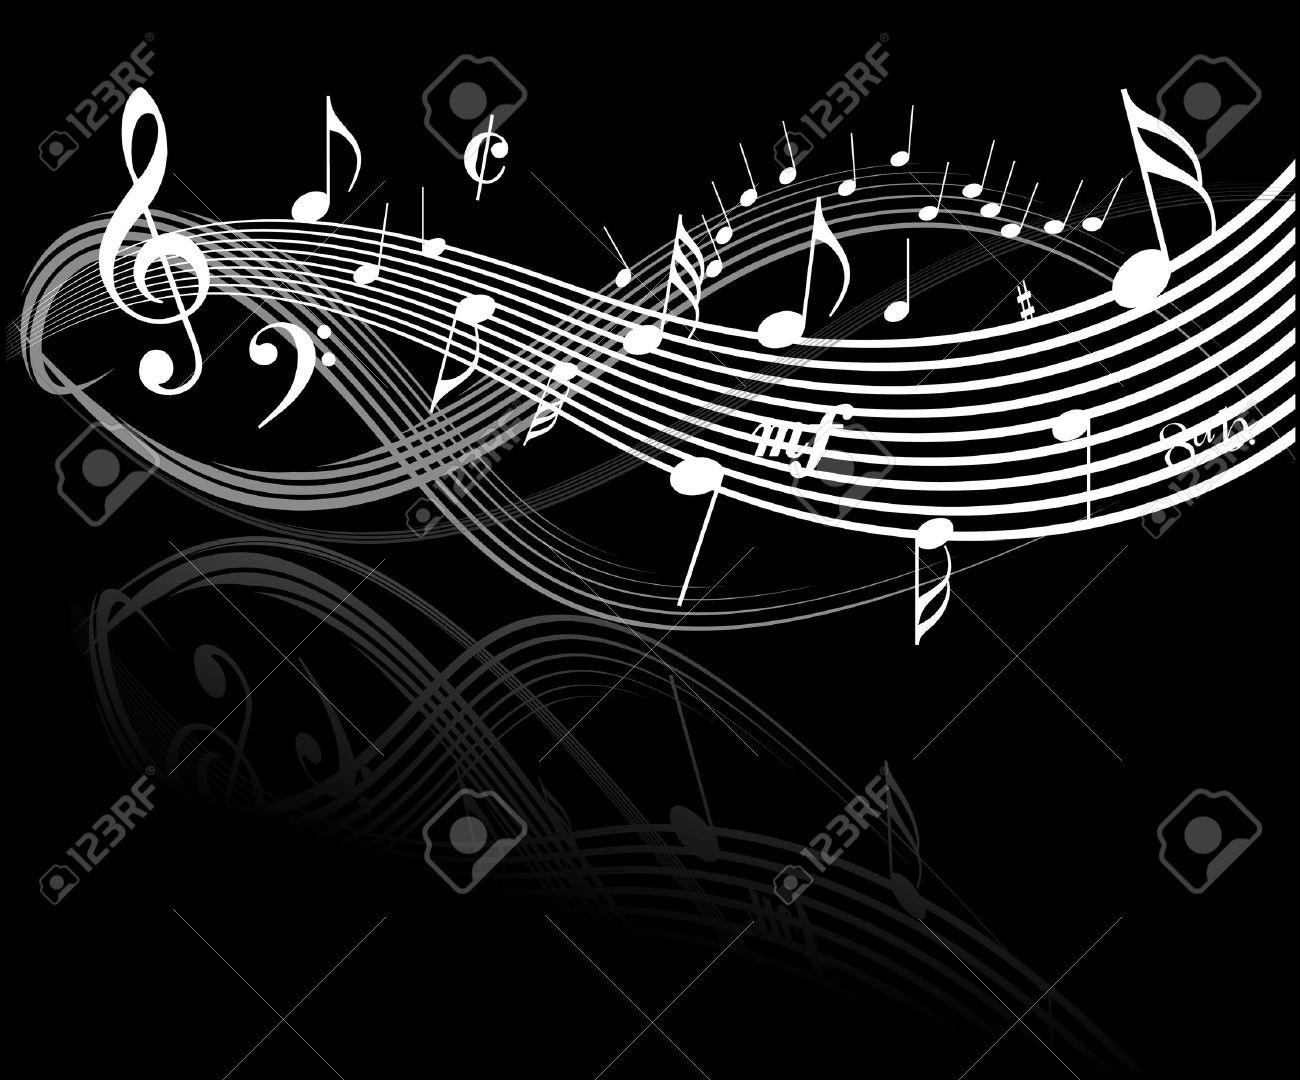 Black And White Music Notes Background Music theme - white notes on